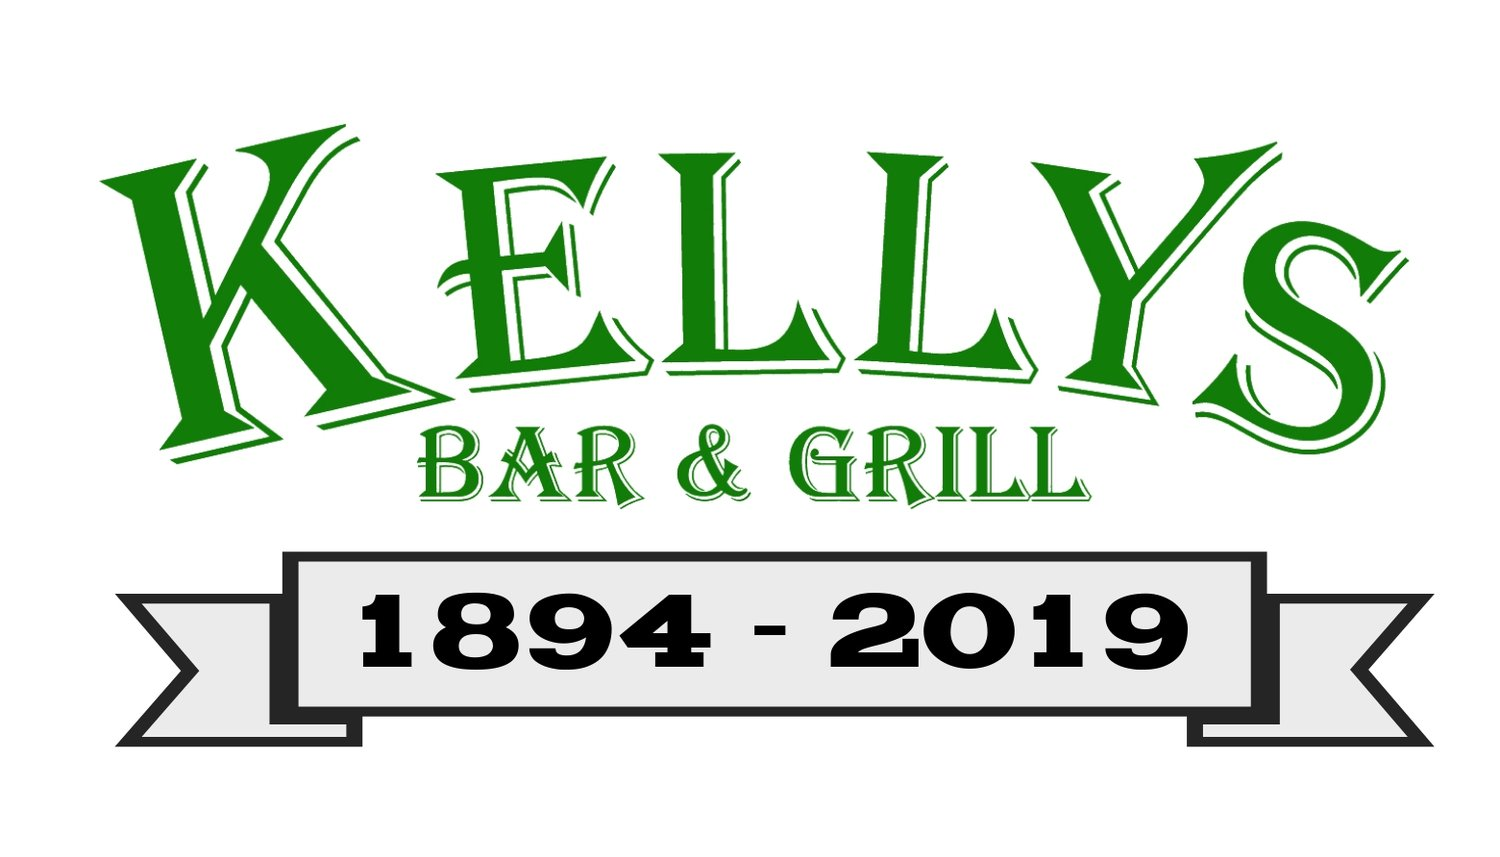 Kelly's Bar & Grill